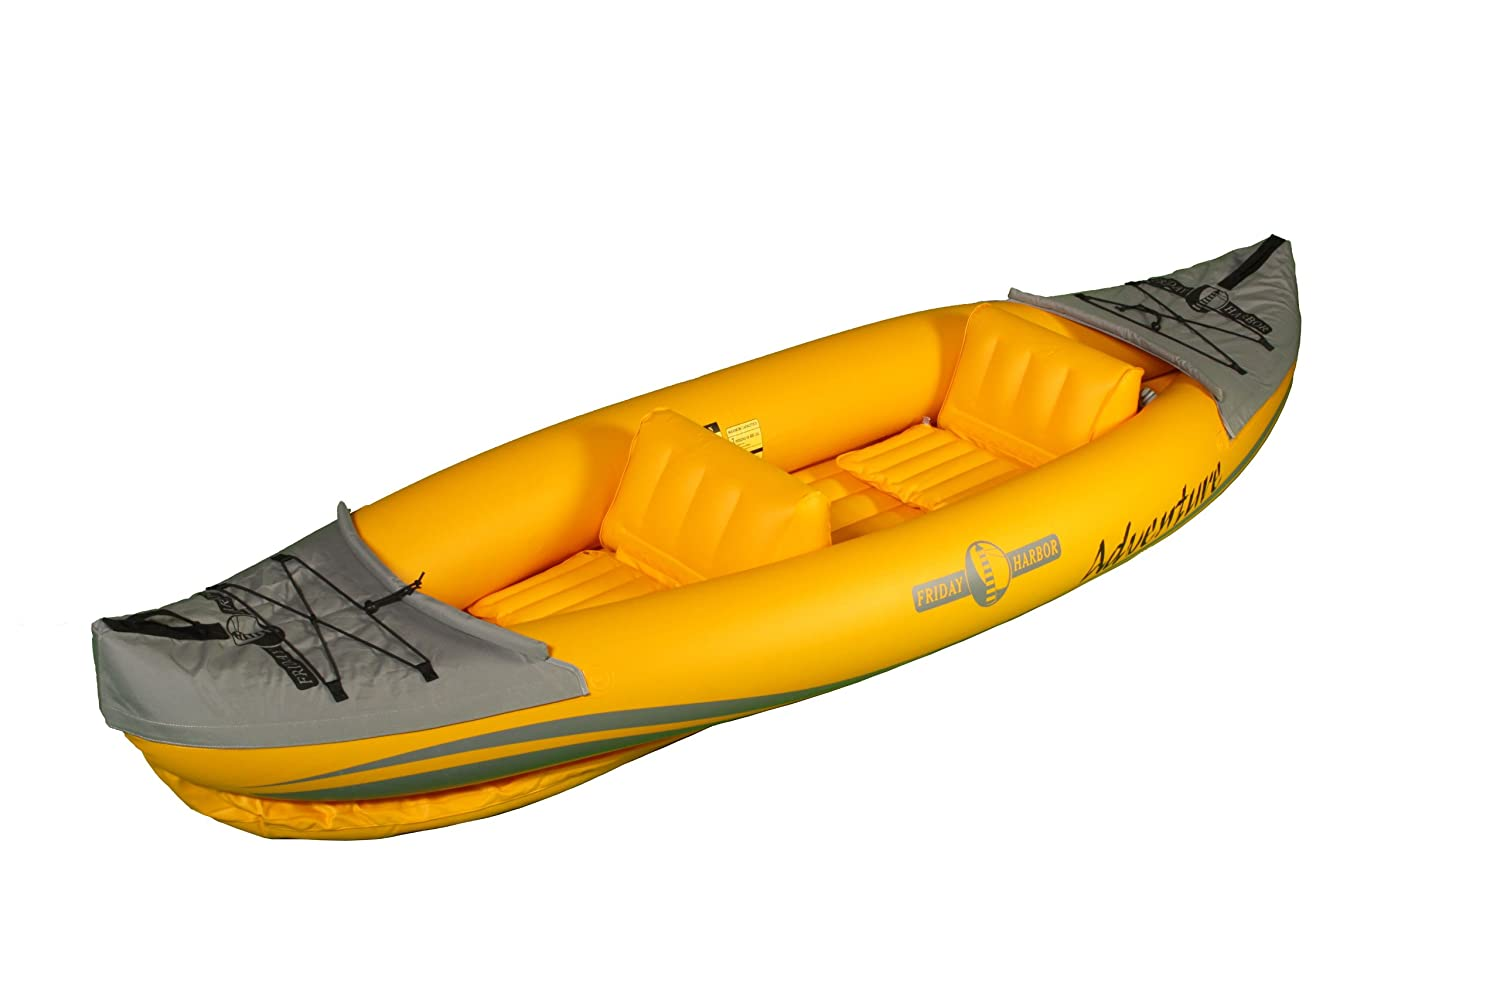 ADVANCED ELEMENTS Friday Harbor Adventure Kayak